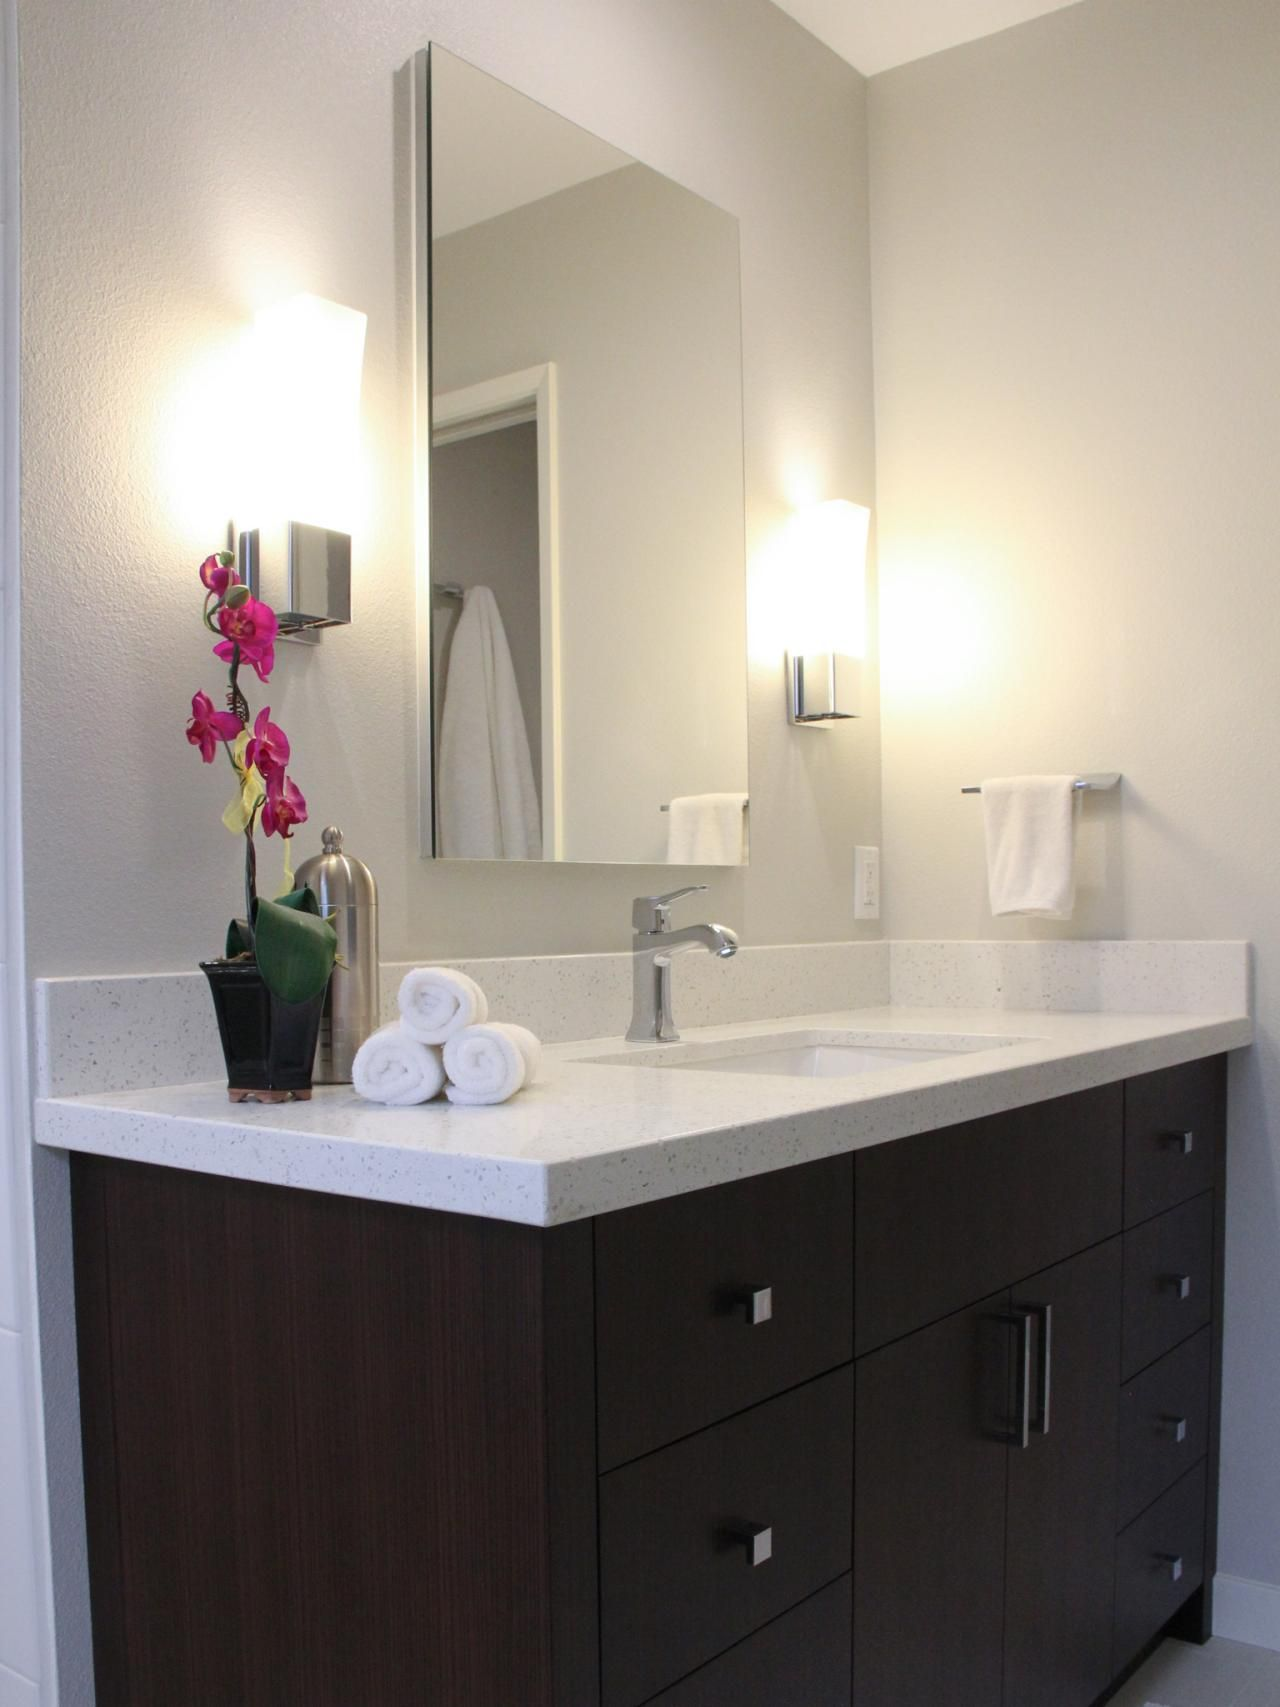 contemporary wall sconces bathroom. A Contemporary Corner Vanity That Offers Mirrored Medicine Cabinet And Wall Sconces To Provide The Bathroom L